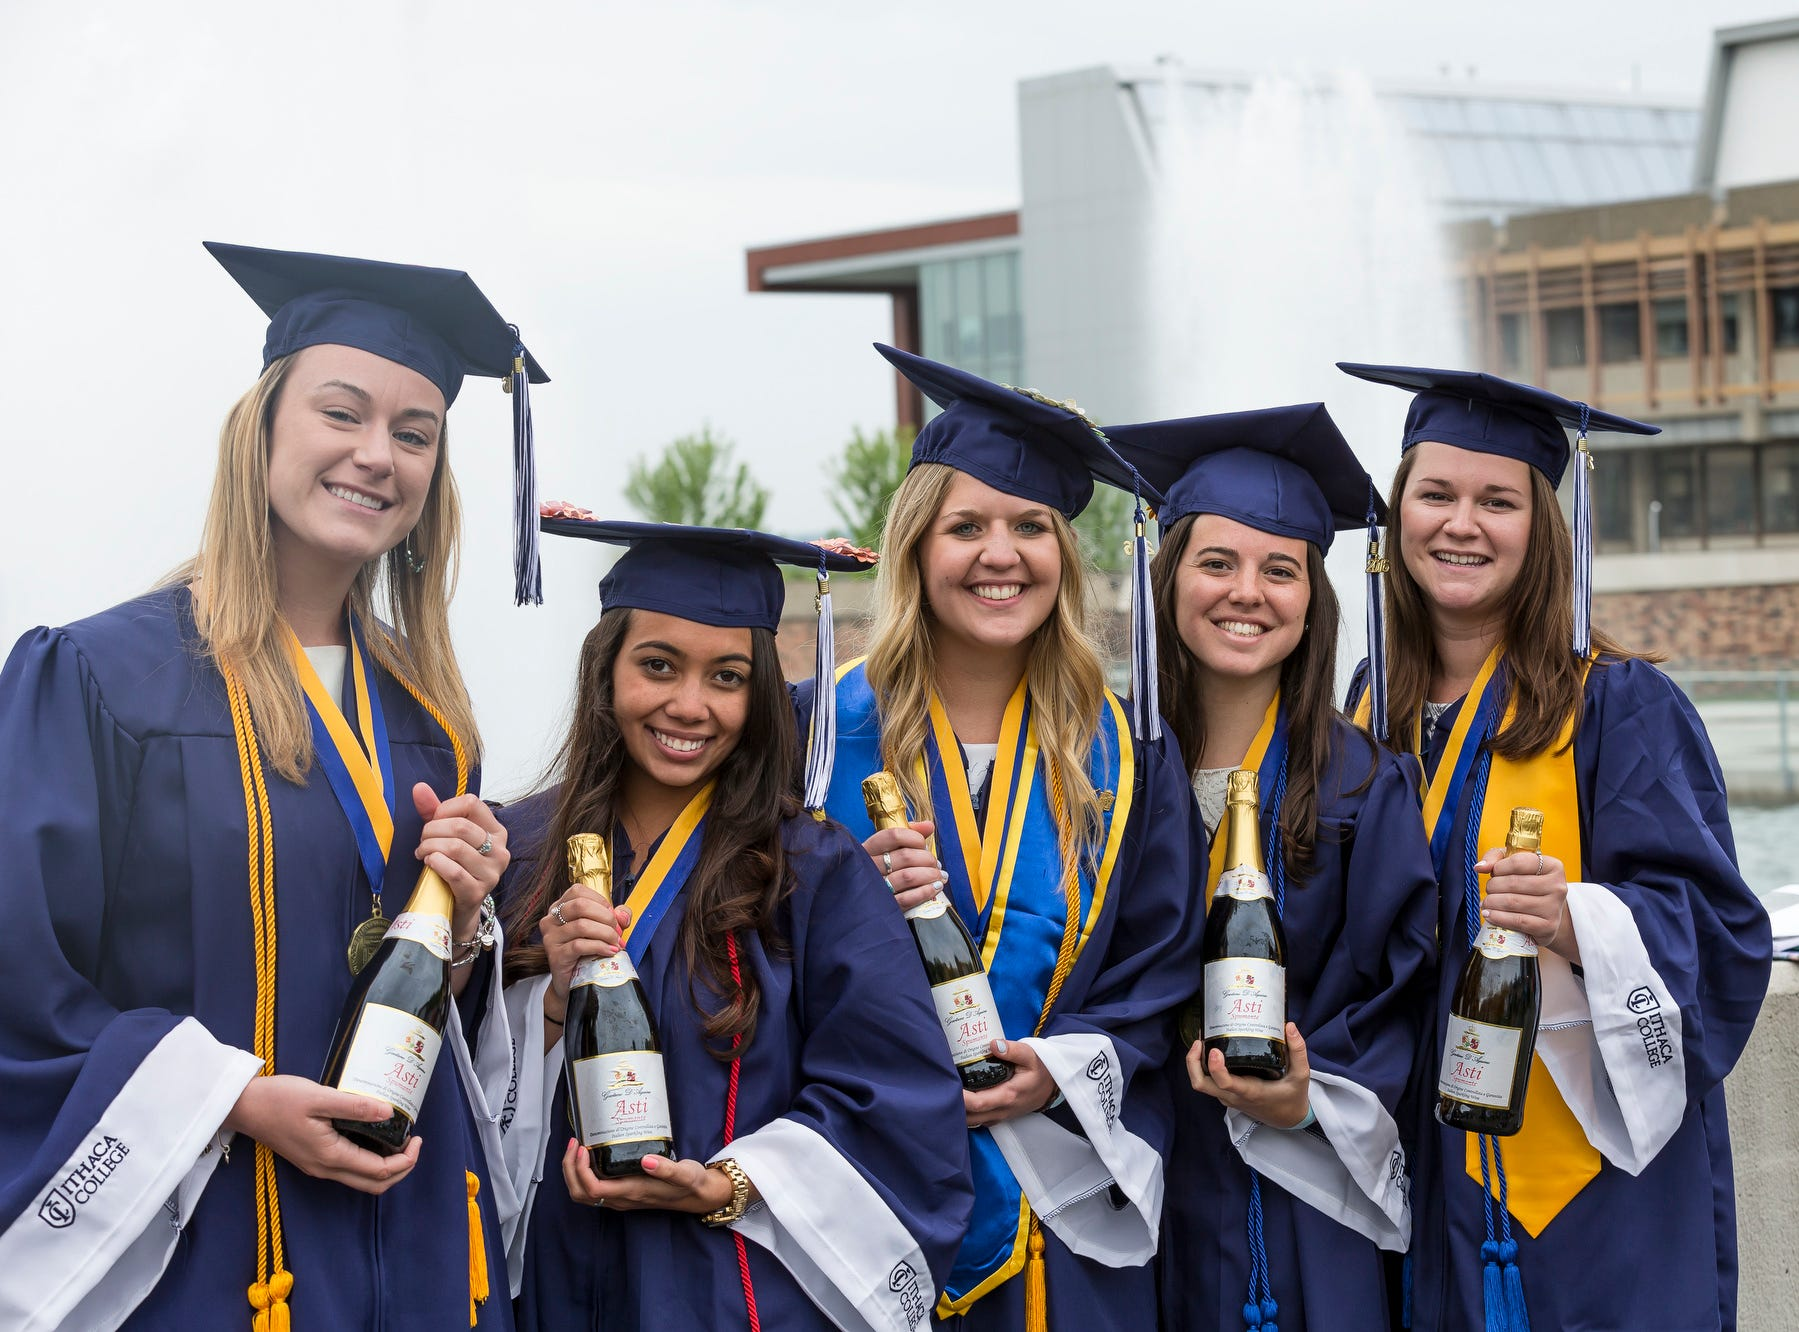 2016: From left, Danielle Kawryga, Jenna Johnson, Alix Gershun, Danielle Koenig, and Hannah Fenton celebrate after the 121st Ithaca College Commencement ceremony on Sunday.